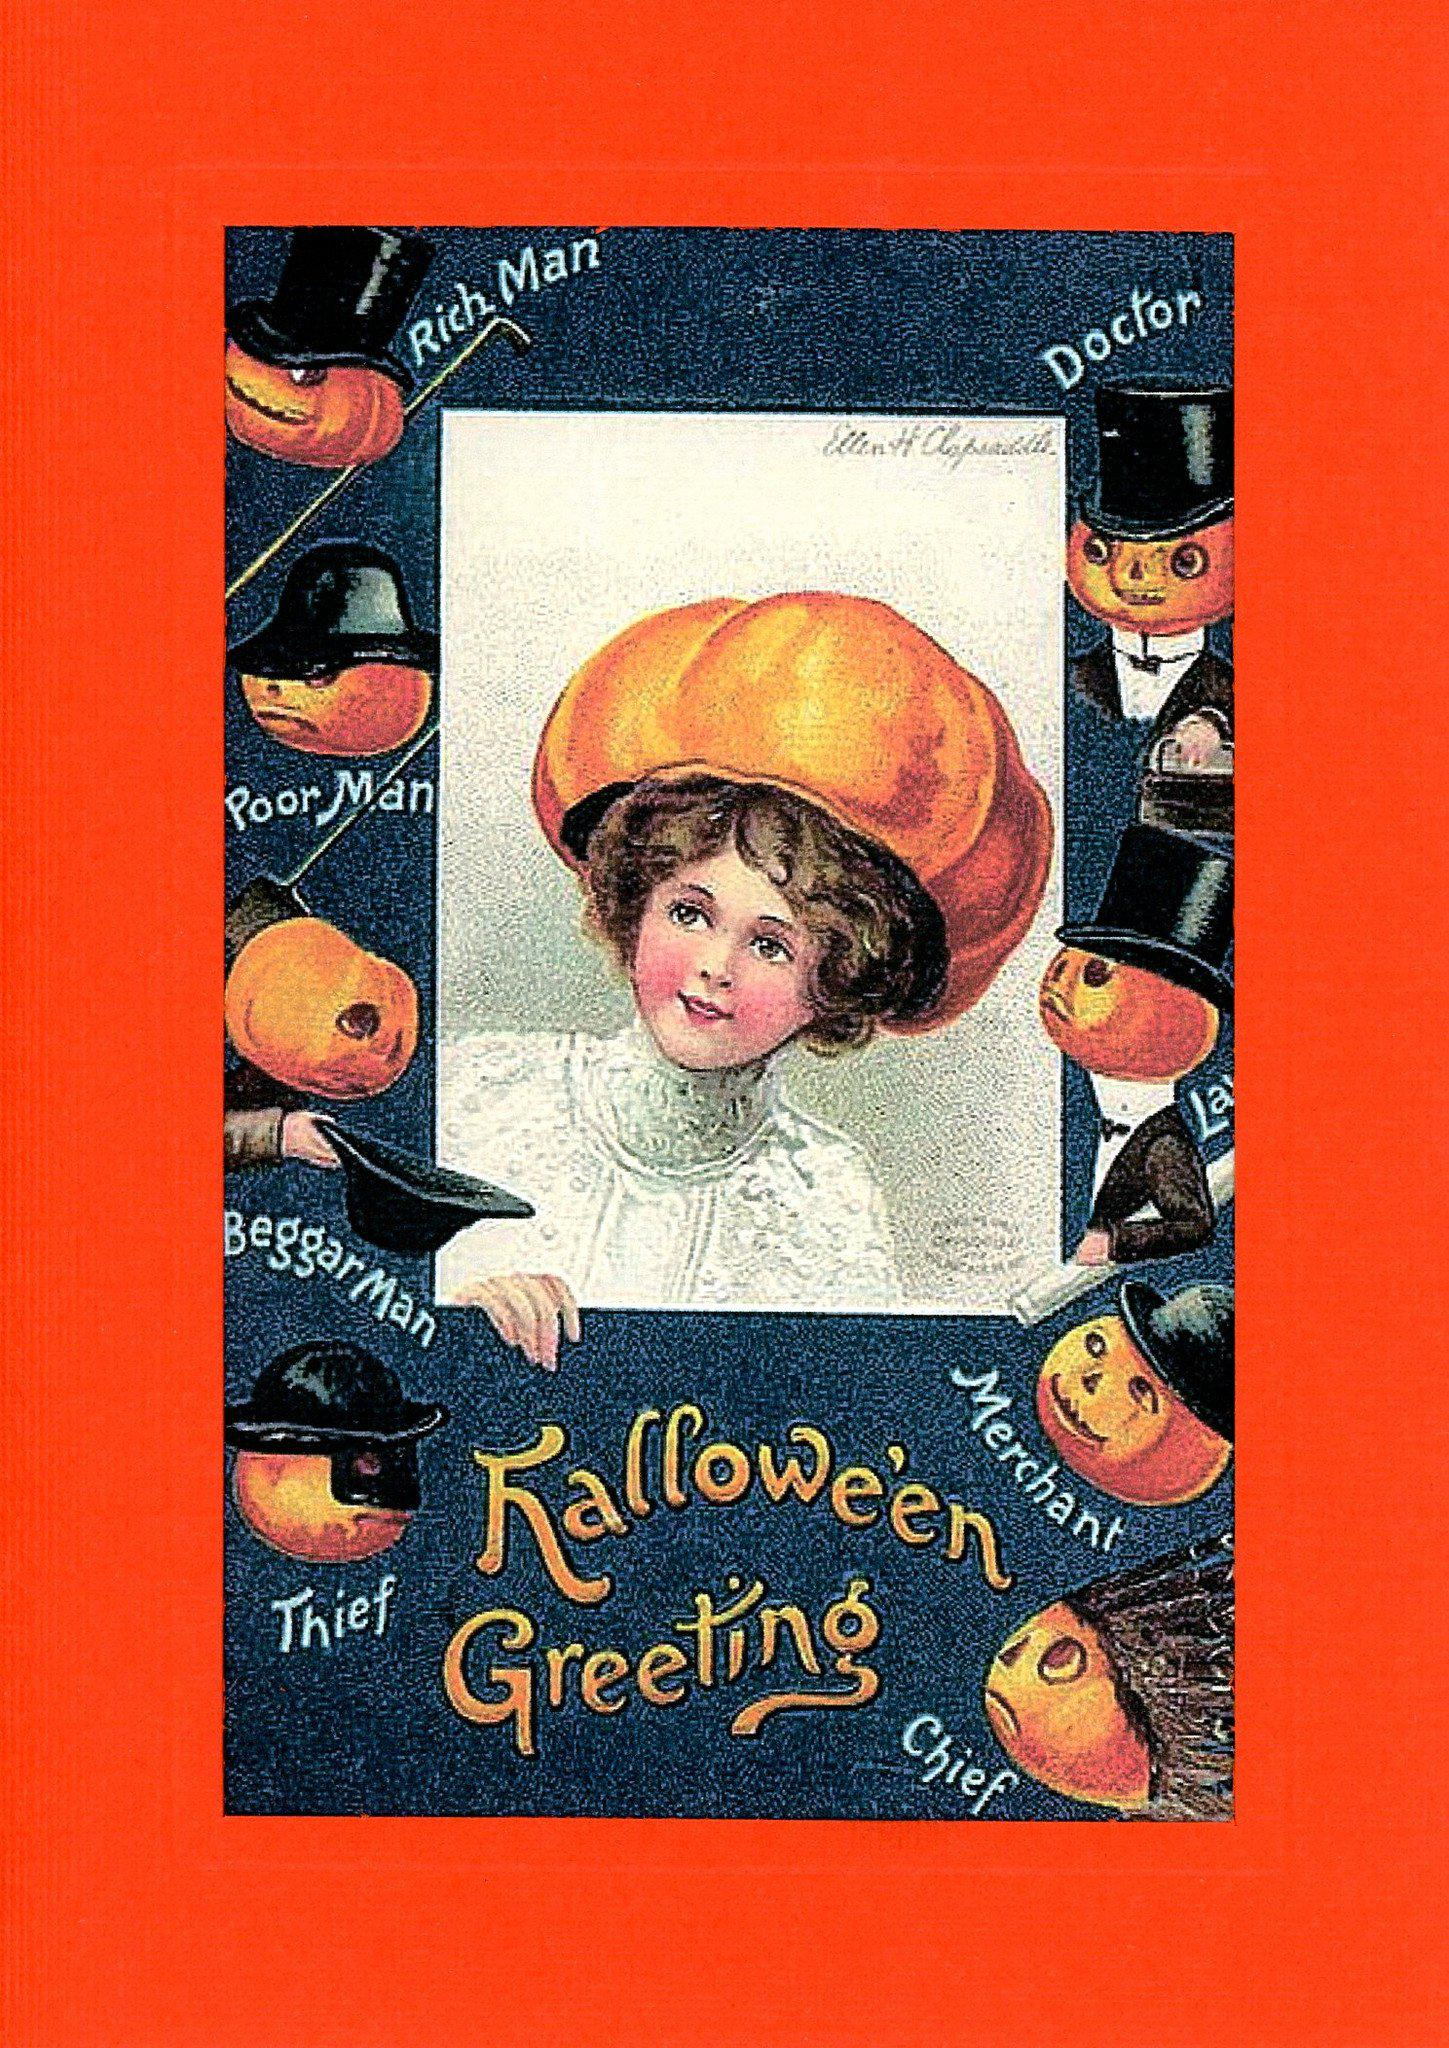 Hallowe'en Greeting-Greetings from the Past-Plymouth Cards